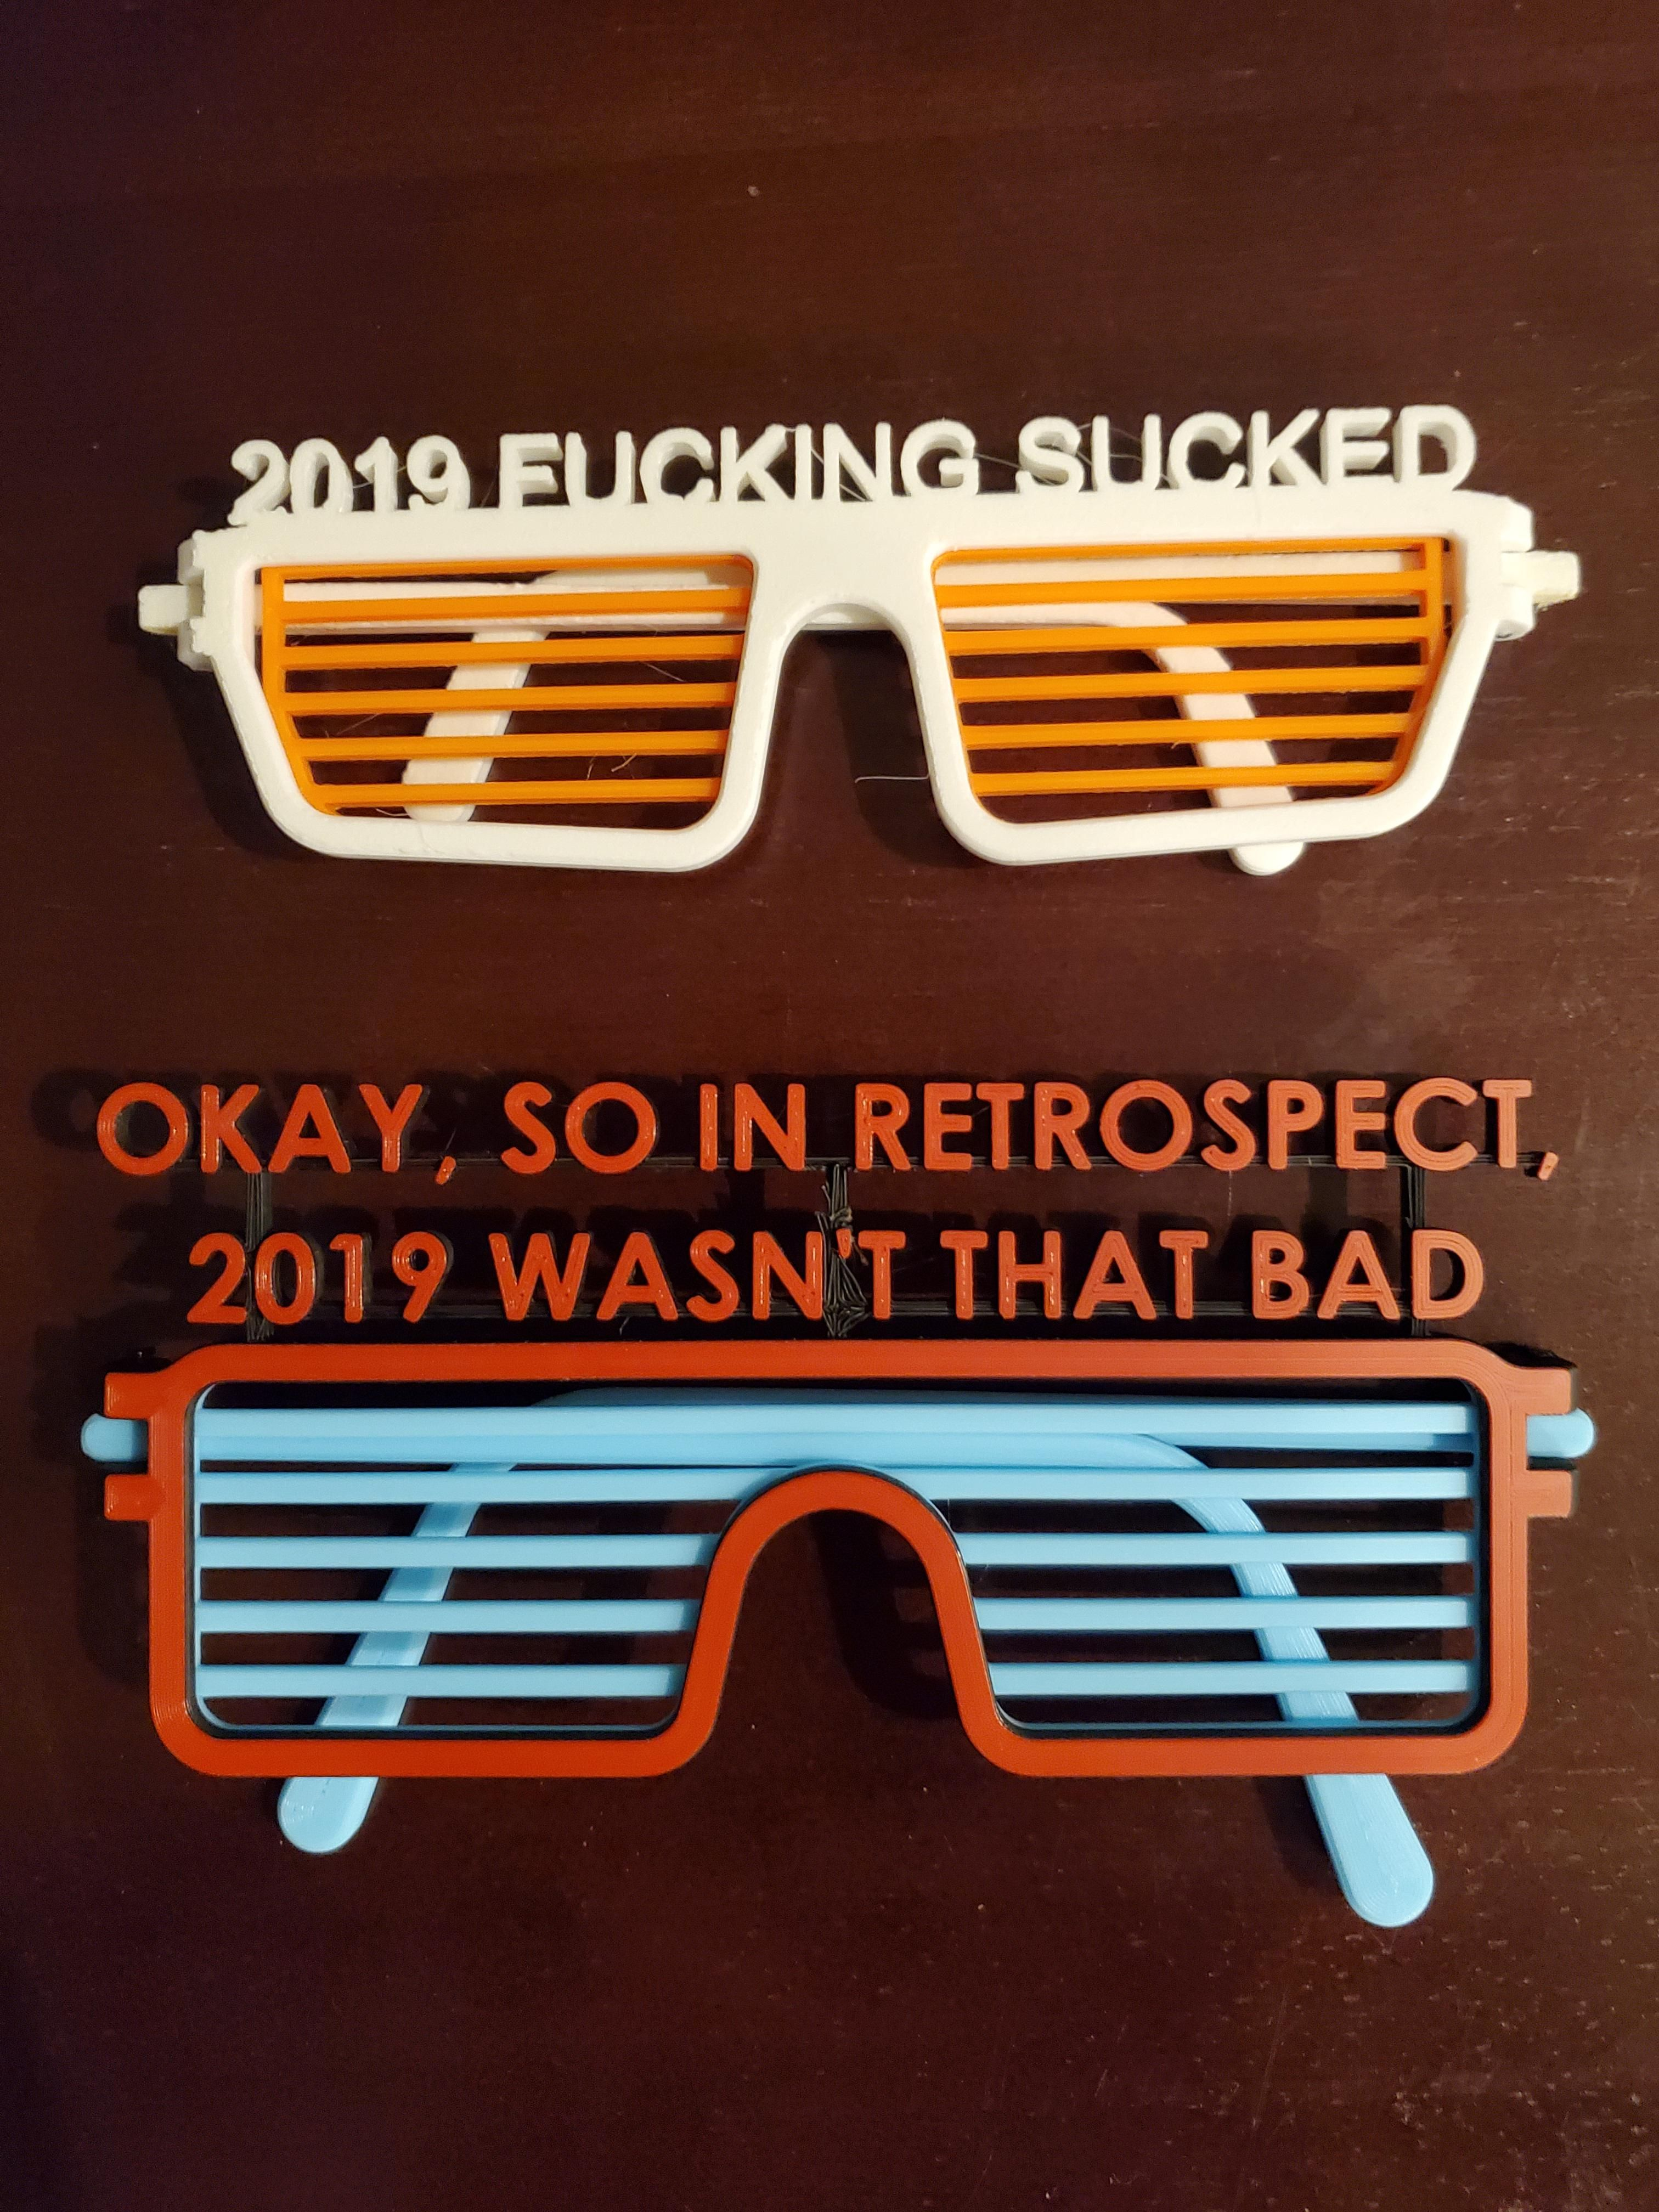 Behold! My friend makes glasses each year for his New Year's get together. 2019 edition vs 2020 edition .